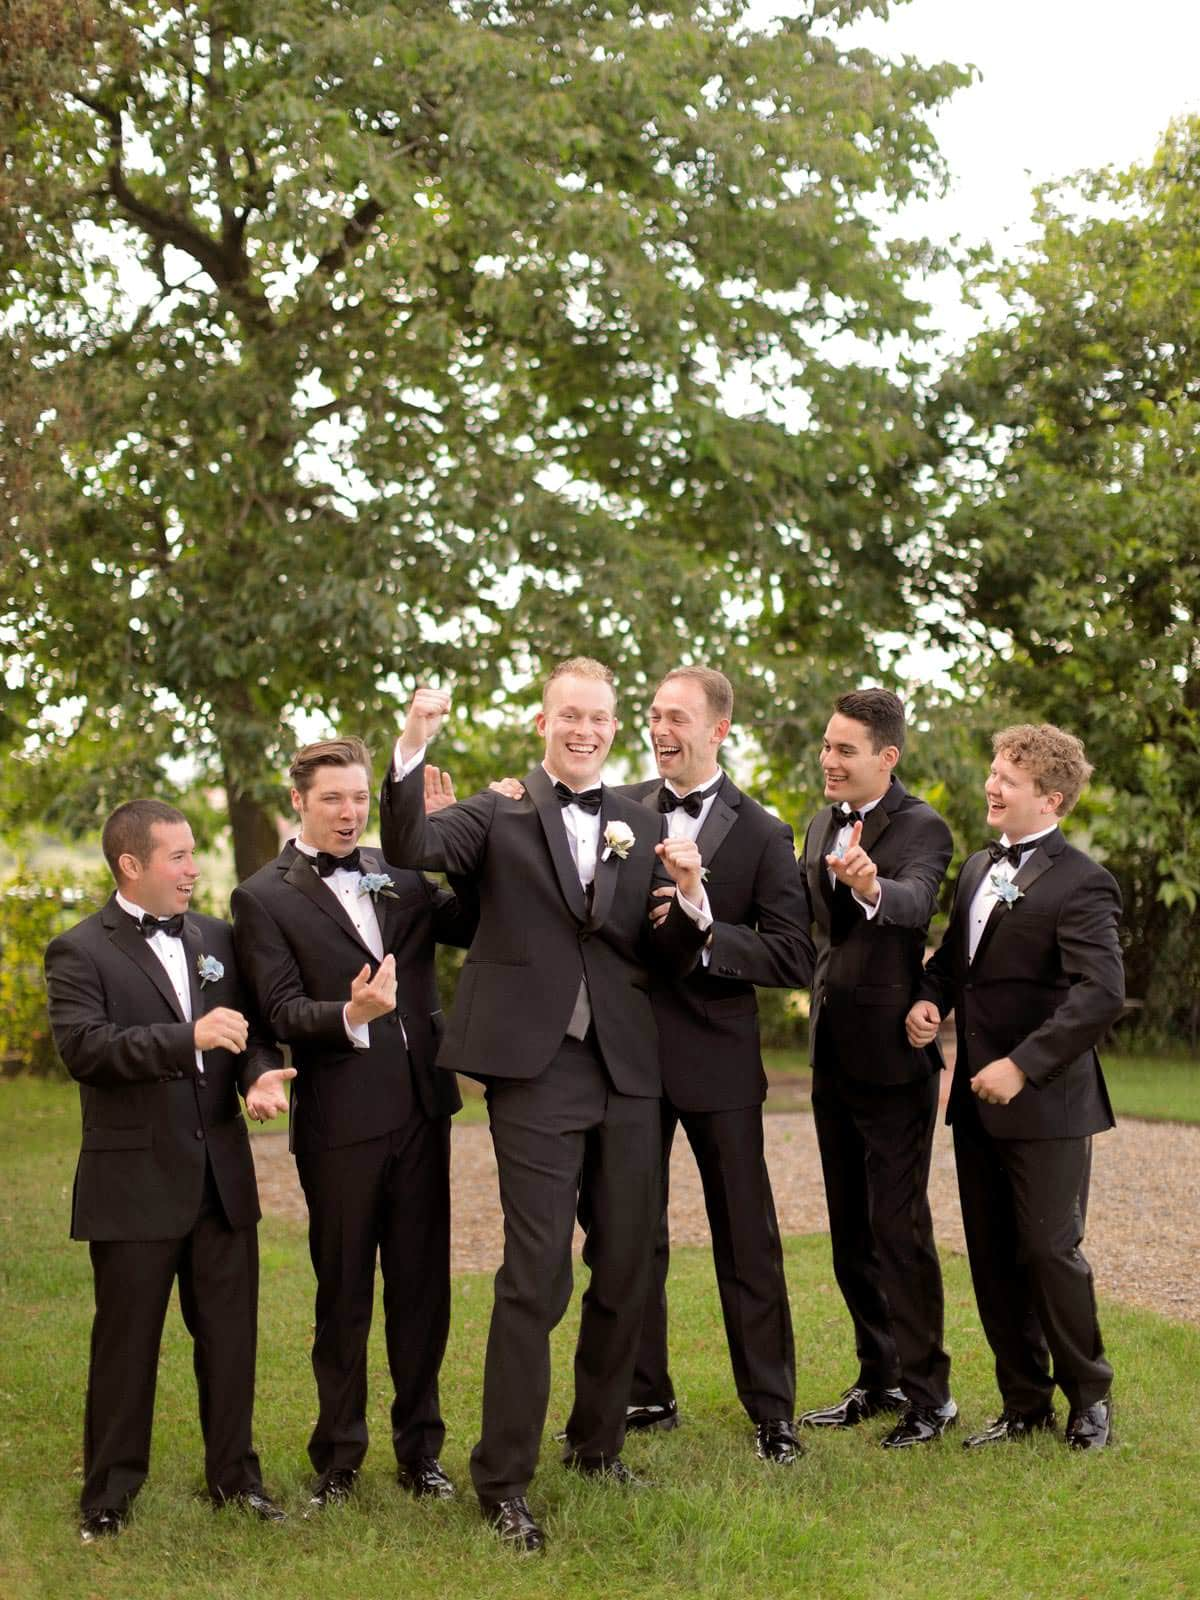 groomsmen having a great time in the garden